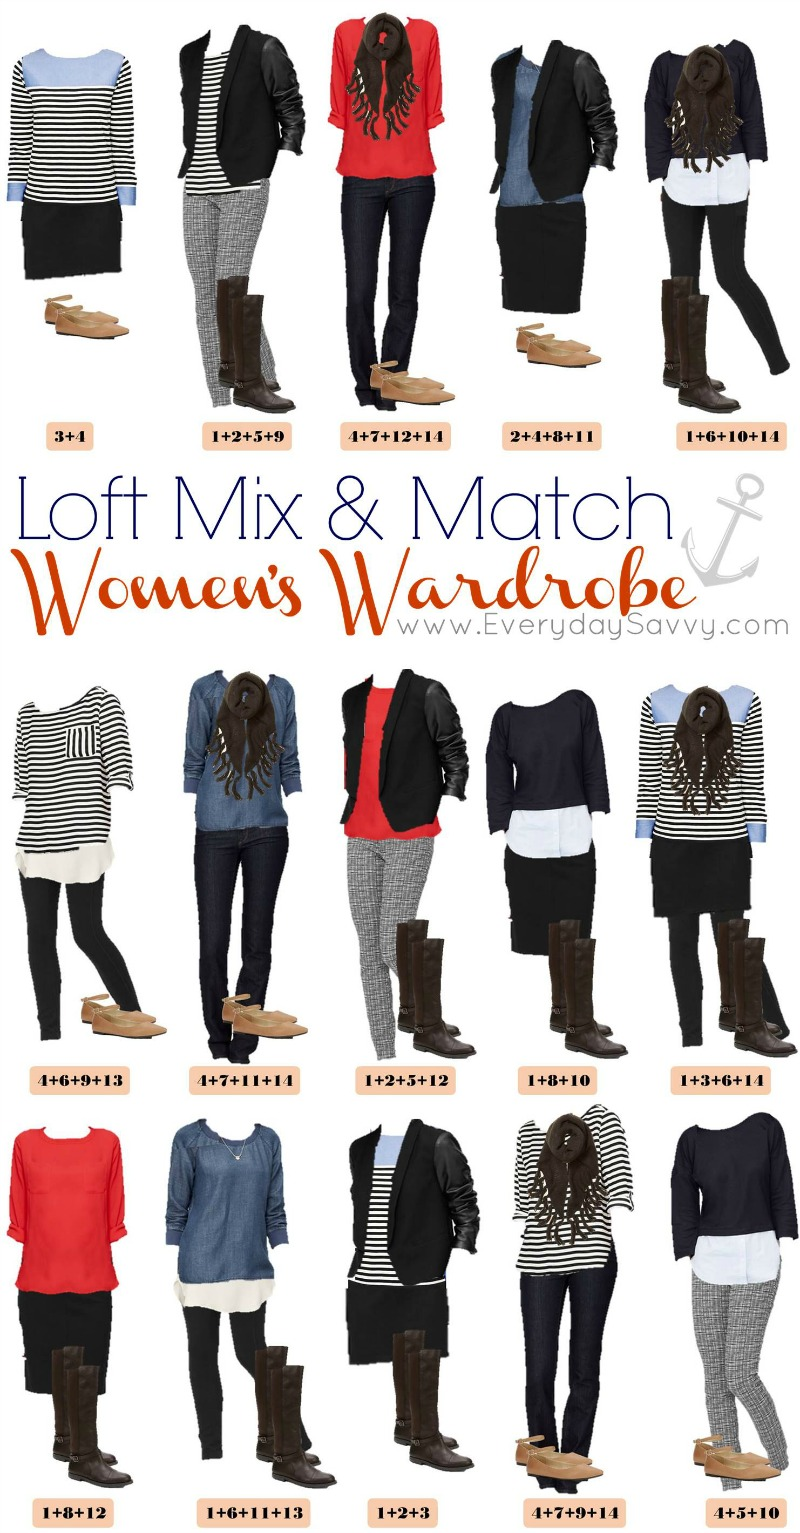 15 mix and match outfits from loft nautical leather everyday savvy. Black Bedroom Furniture Sets. Home Design Ideas